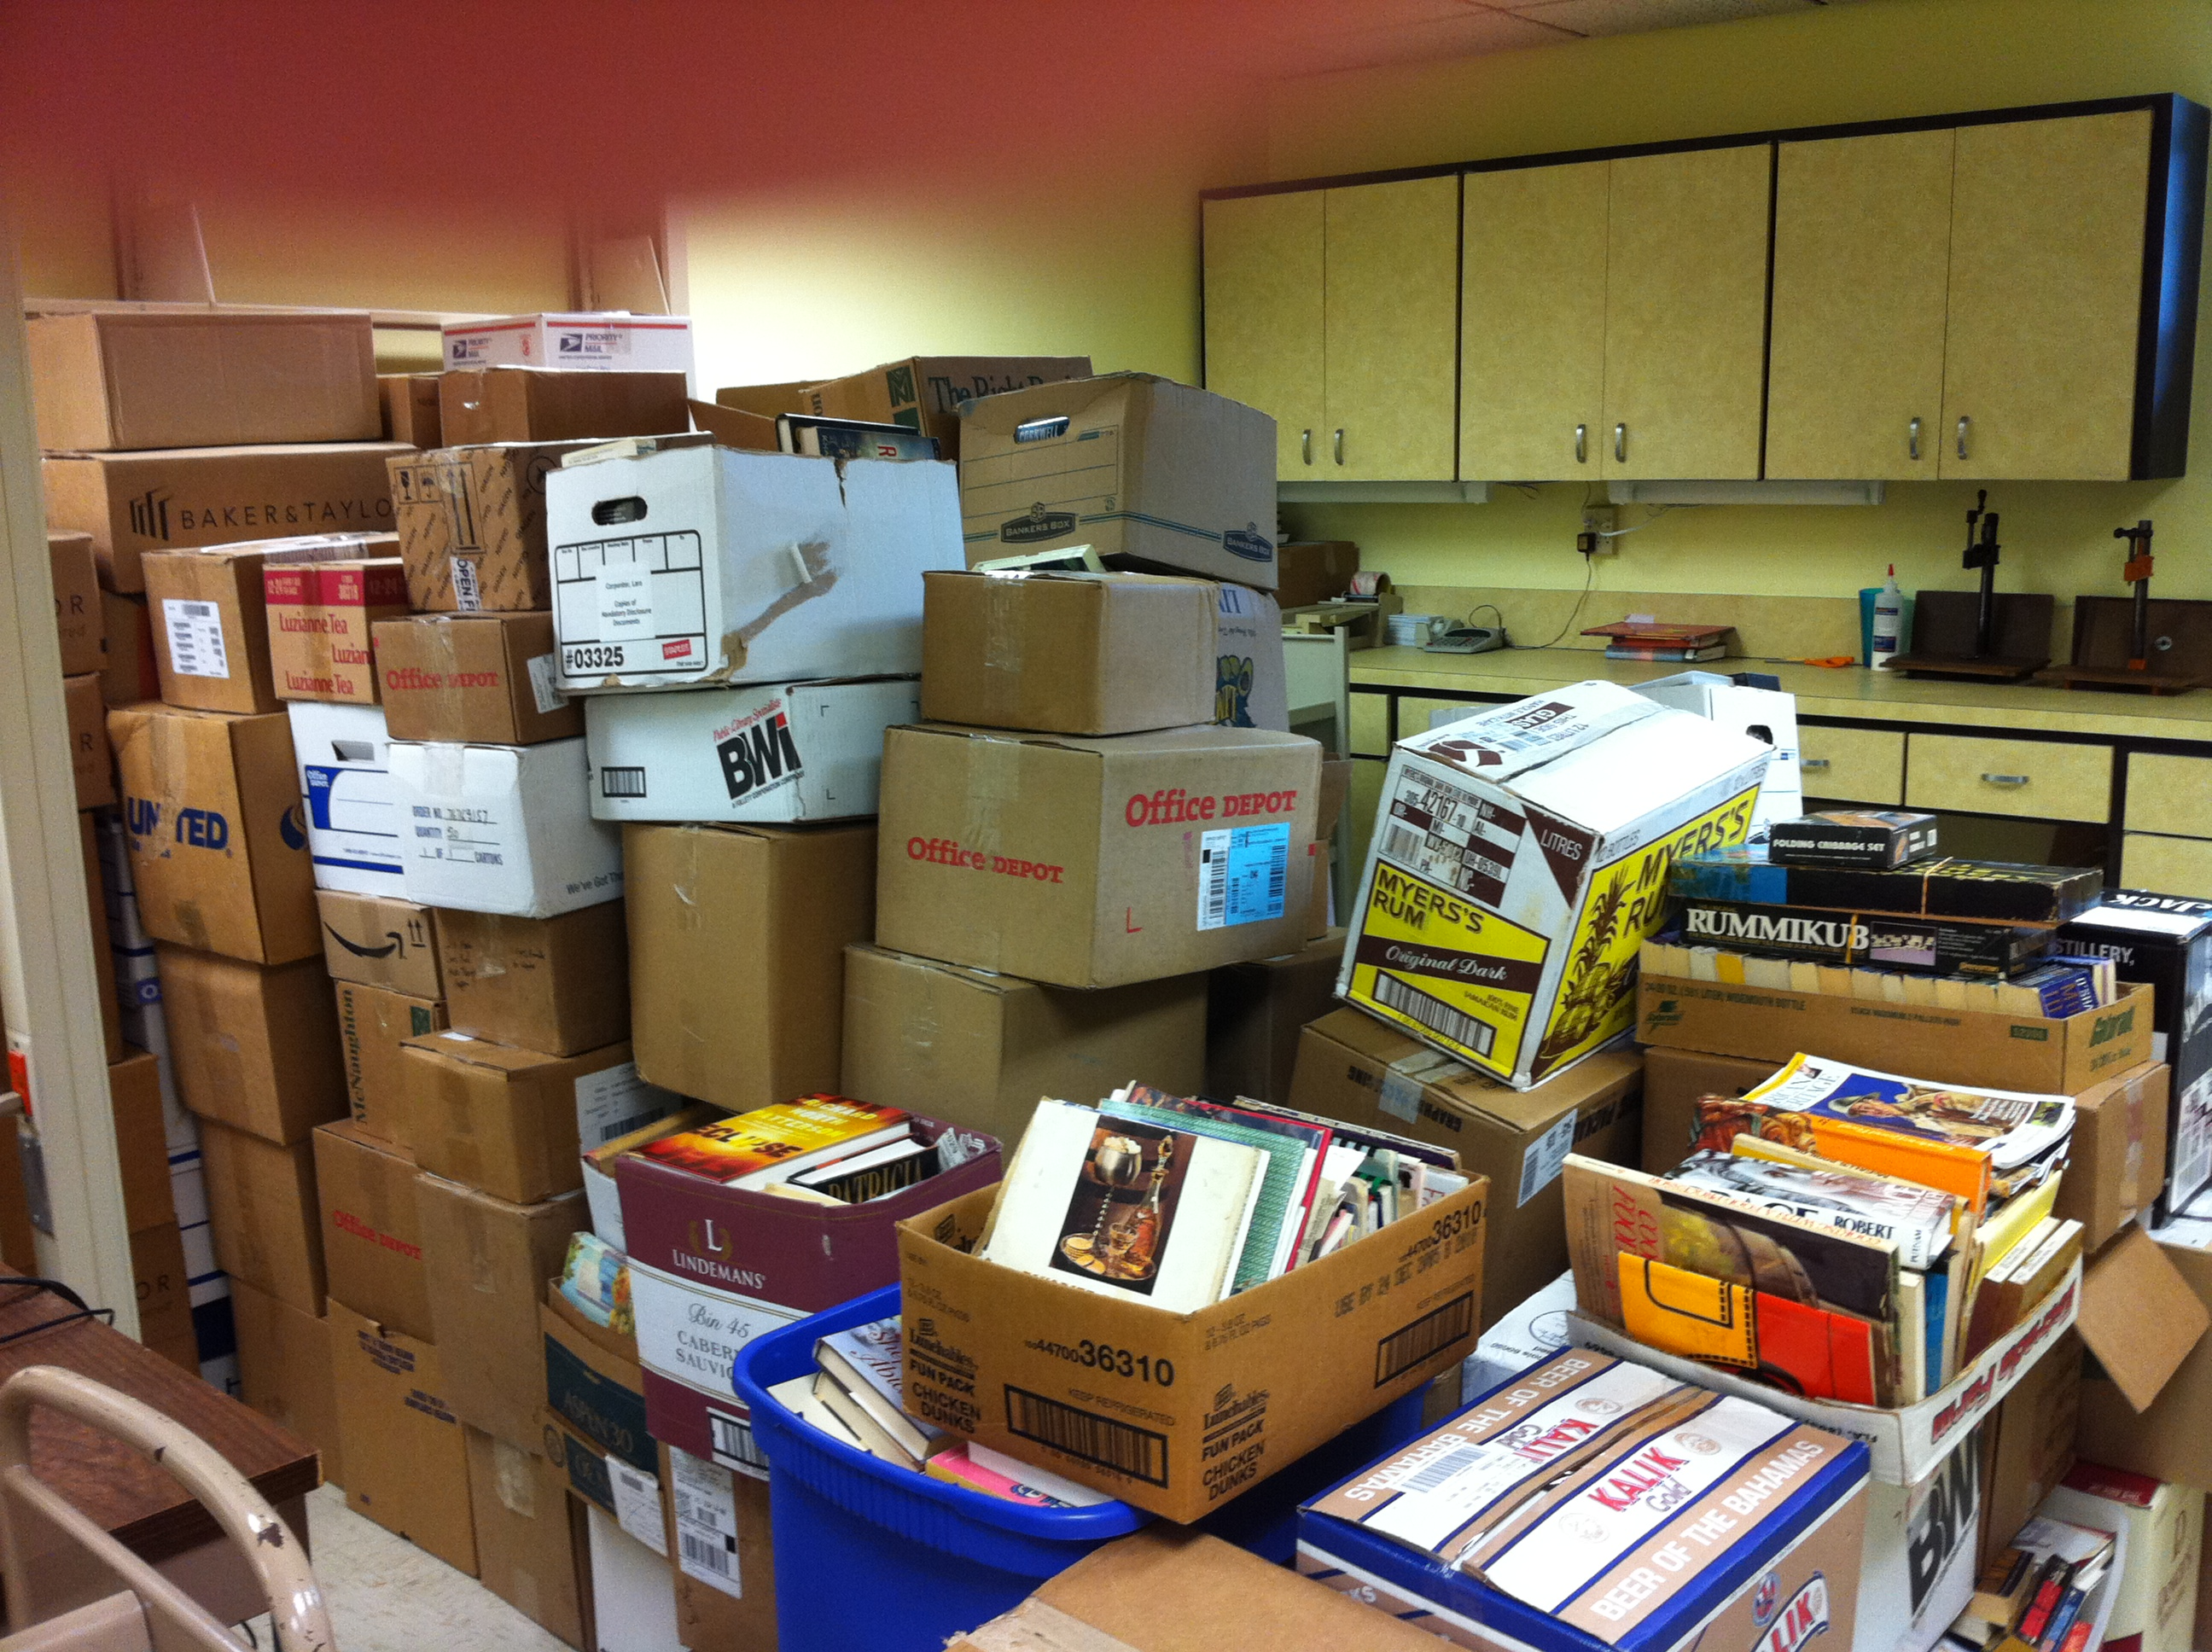 Boxes of books sit ready for sale